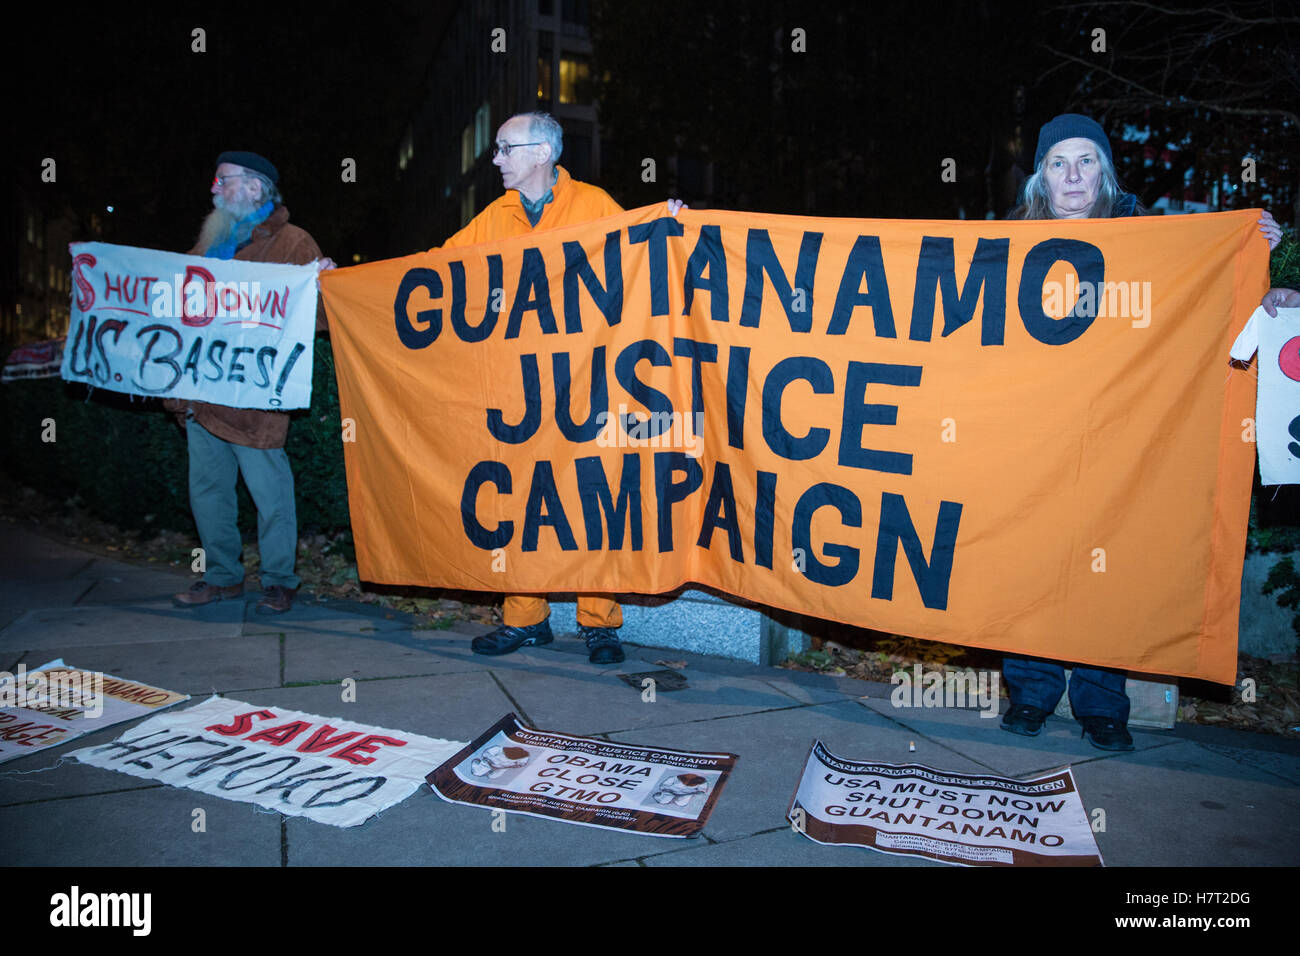 London, UK. 8th November, 2016. Activists from the London Guantanamo Campaign protest outside the US embassy following Stock Photo